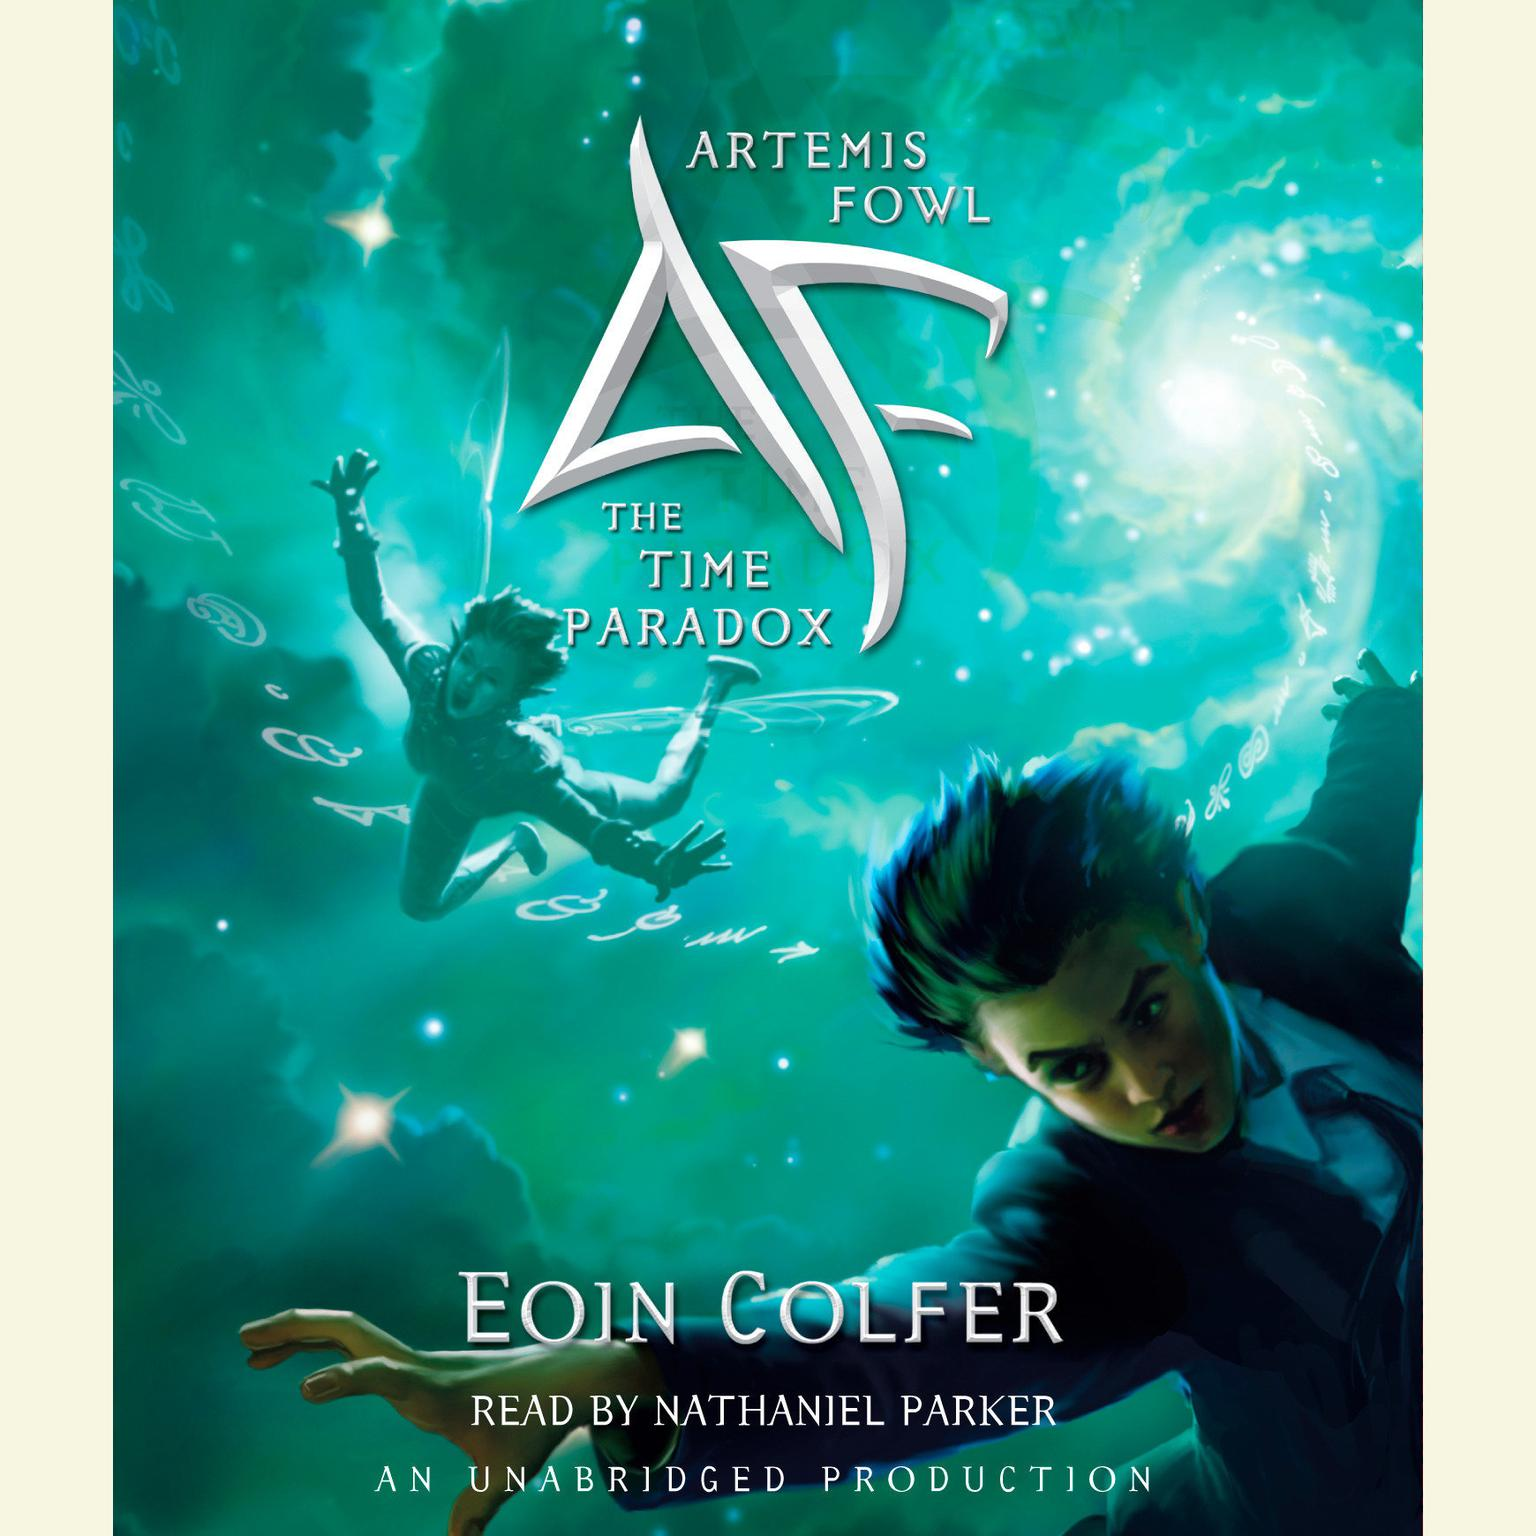 The Time Paradox (Artemis Fowl, Book 6) Colfer, Eoin Hardcover